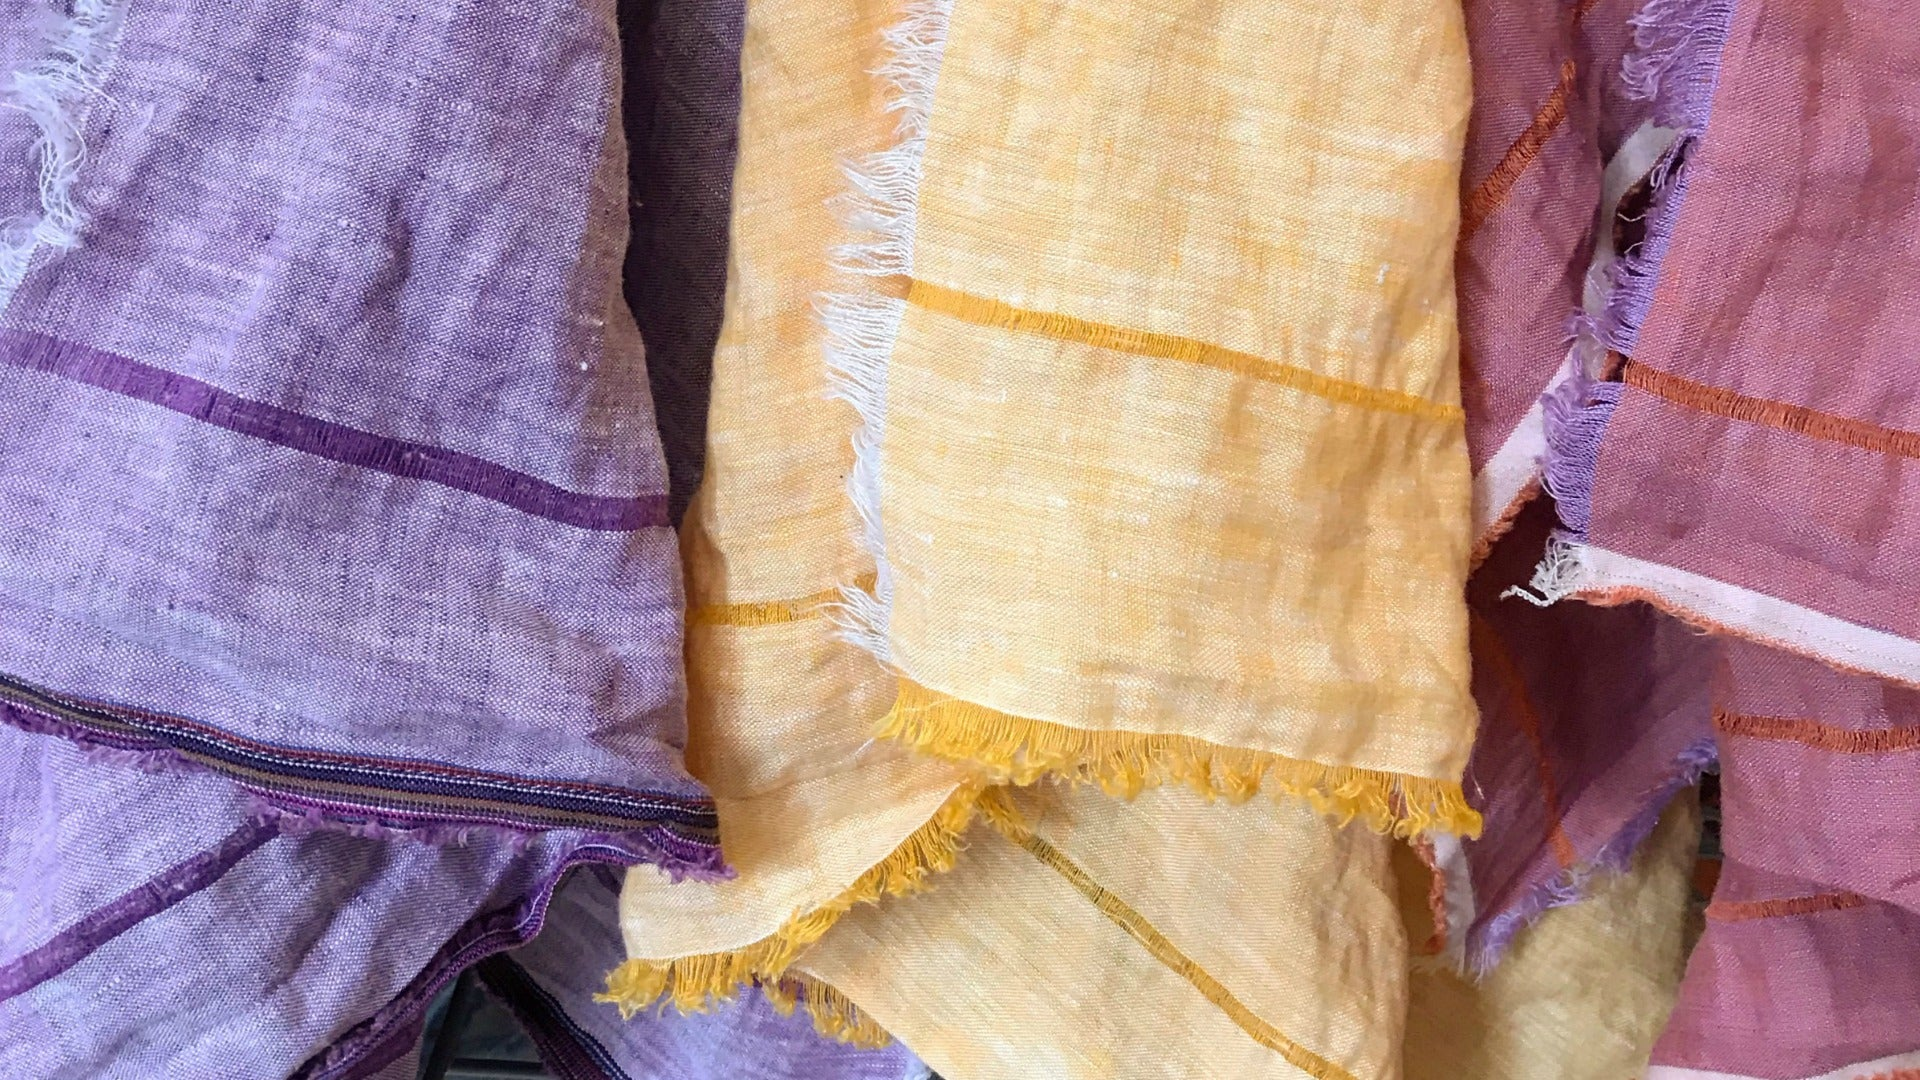 Heirloom linen oversized wrap scarves, hand threaded and fringed. Anthropologie style from Maine.